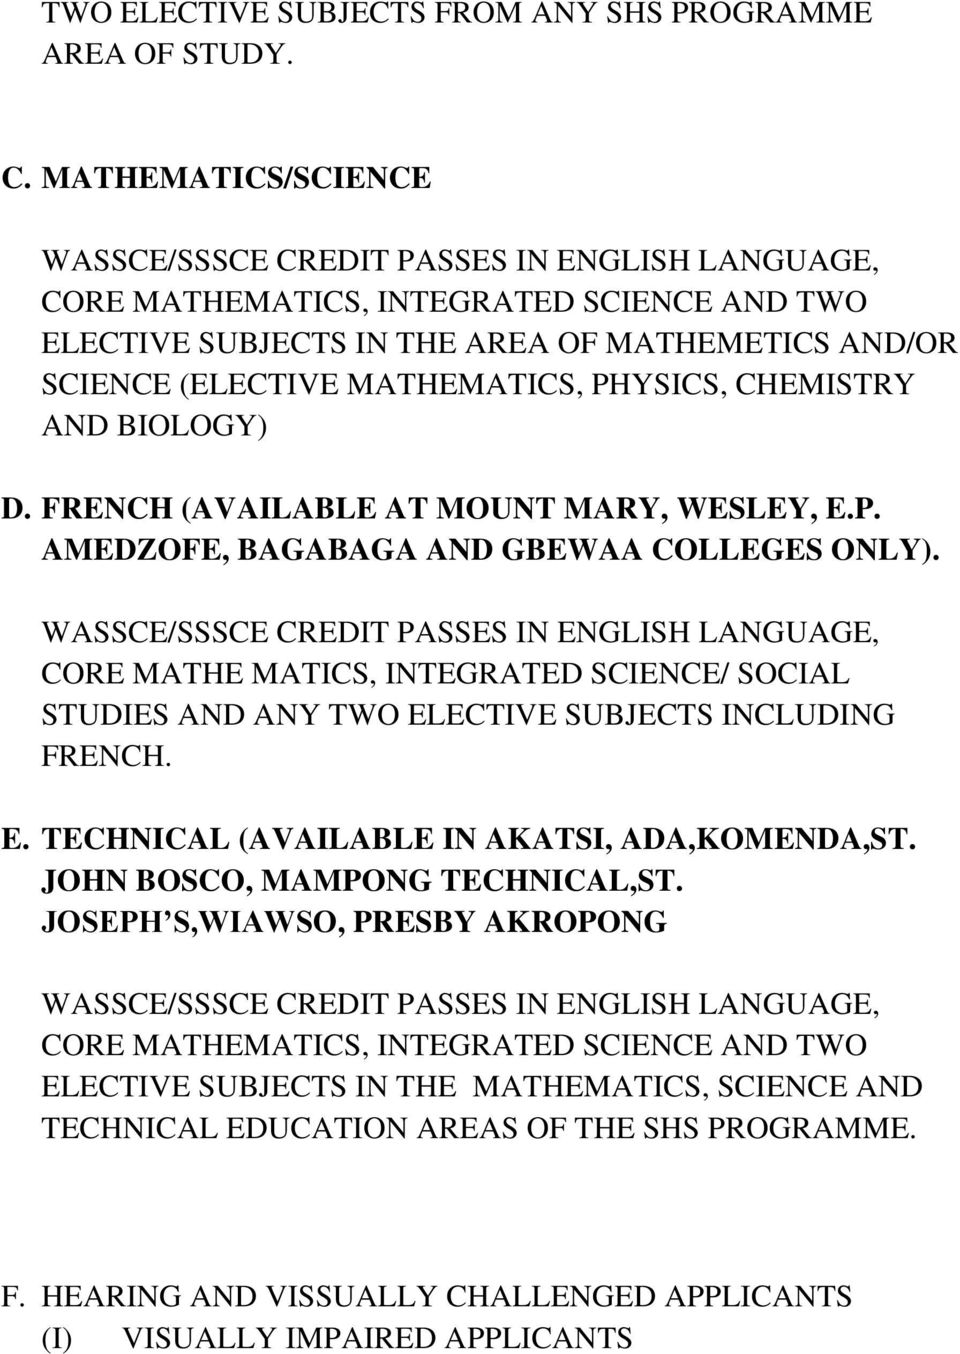 FRENCH (AVAILABLE AT MOUNT MARY, WESLEY, E.P. AMEDZOFE, BAGABAGA AND GBEWAA  COLLEGES